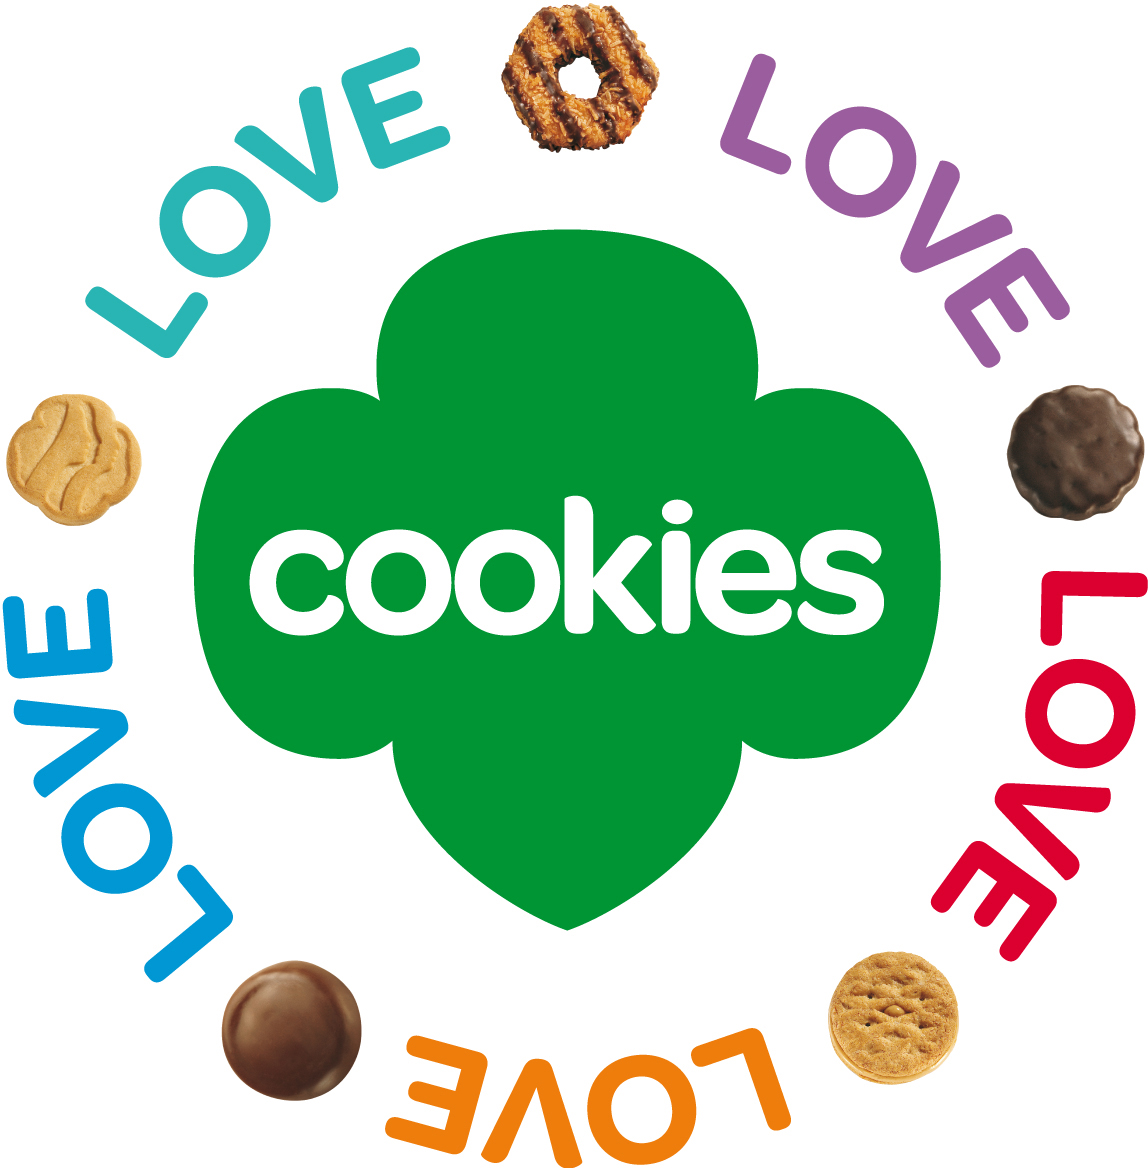 ilovecookies likewise girl scout cookie selling coloring pages 1 on girl scout cookie selling coloring pages also girl scout cookie selling coloring pages 2 on girl scout cookie selling coloring pages besides girl scout cookie selling coloring pages 3 on girl scout cookie selling coloring pages besides girl scout cookie selling coloring pages 4 on girl scout cookie selling coloring pages